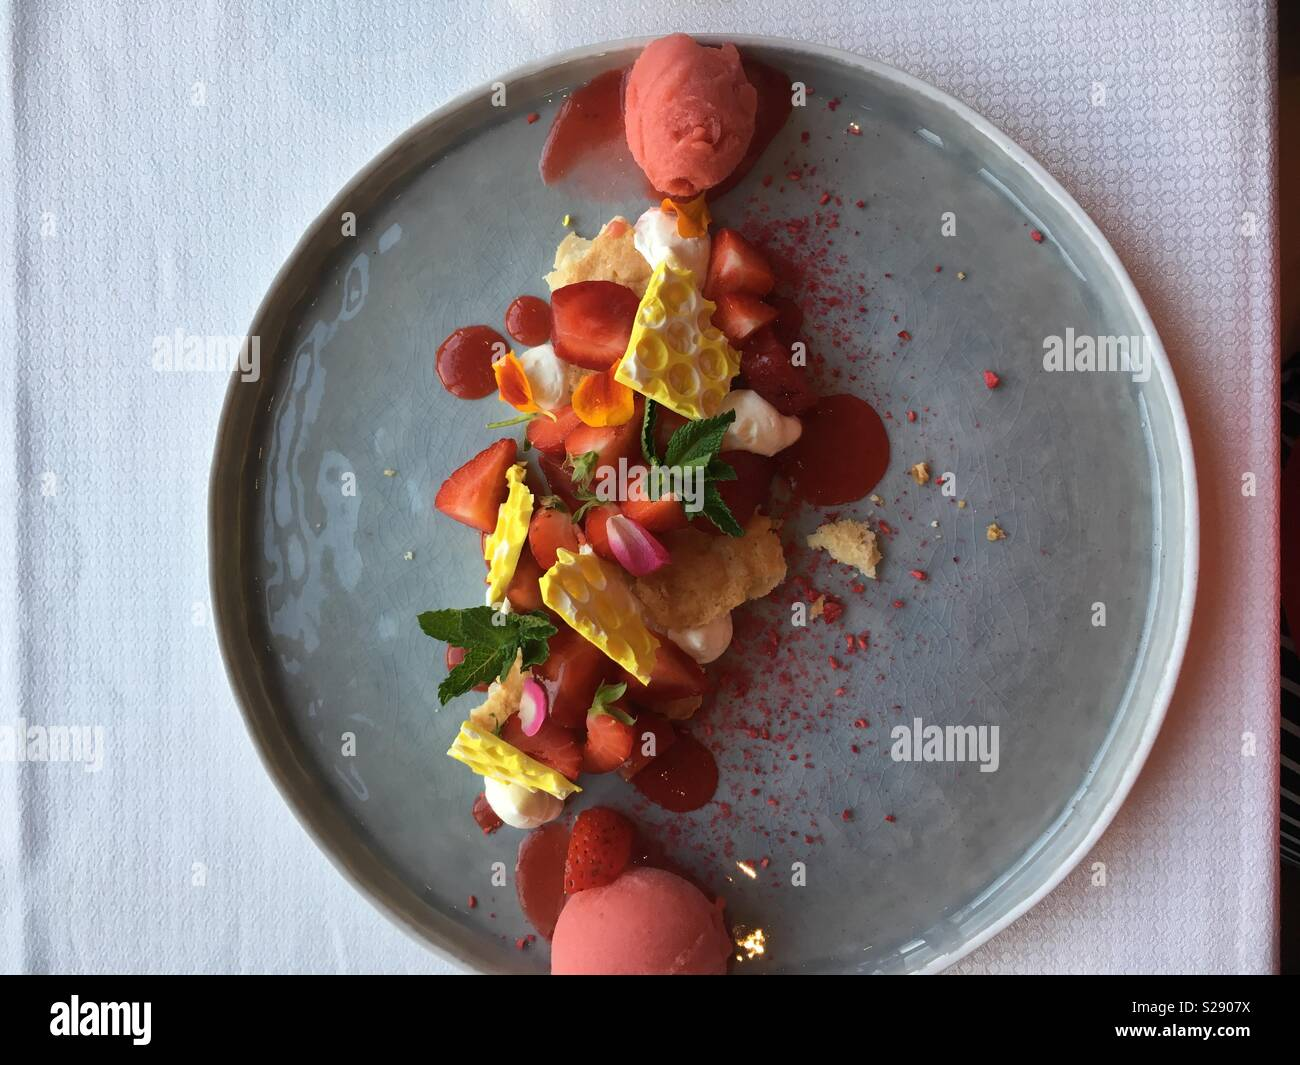 Too pretty to eat? - Stock Image